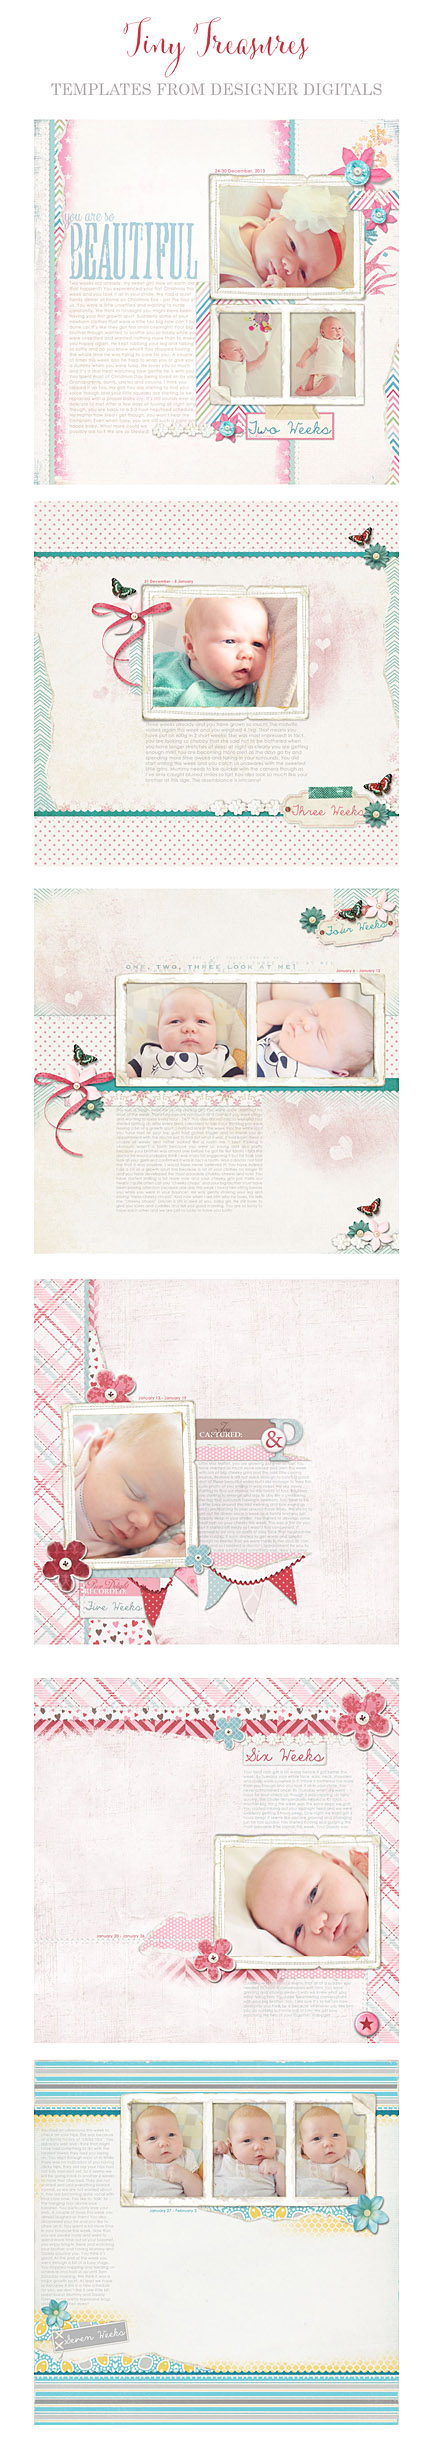 TRACE-TINY-TREASURES-TEMPLATES-BABY-LAYOUTS